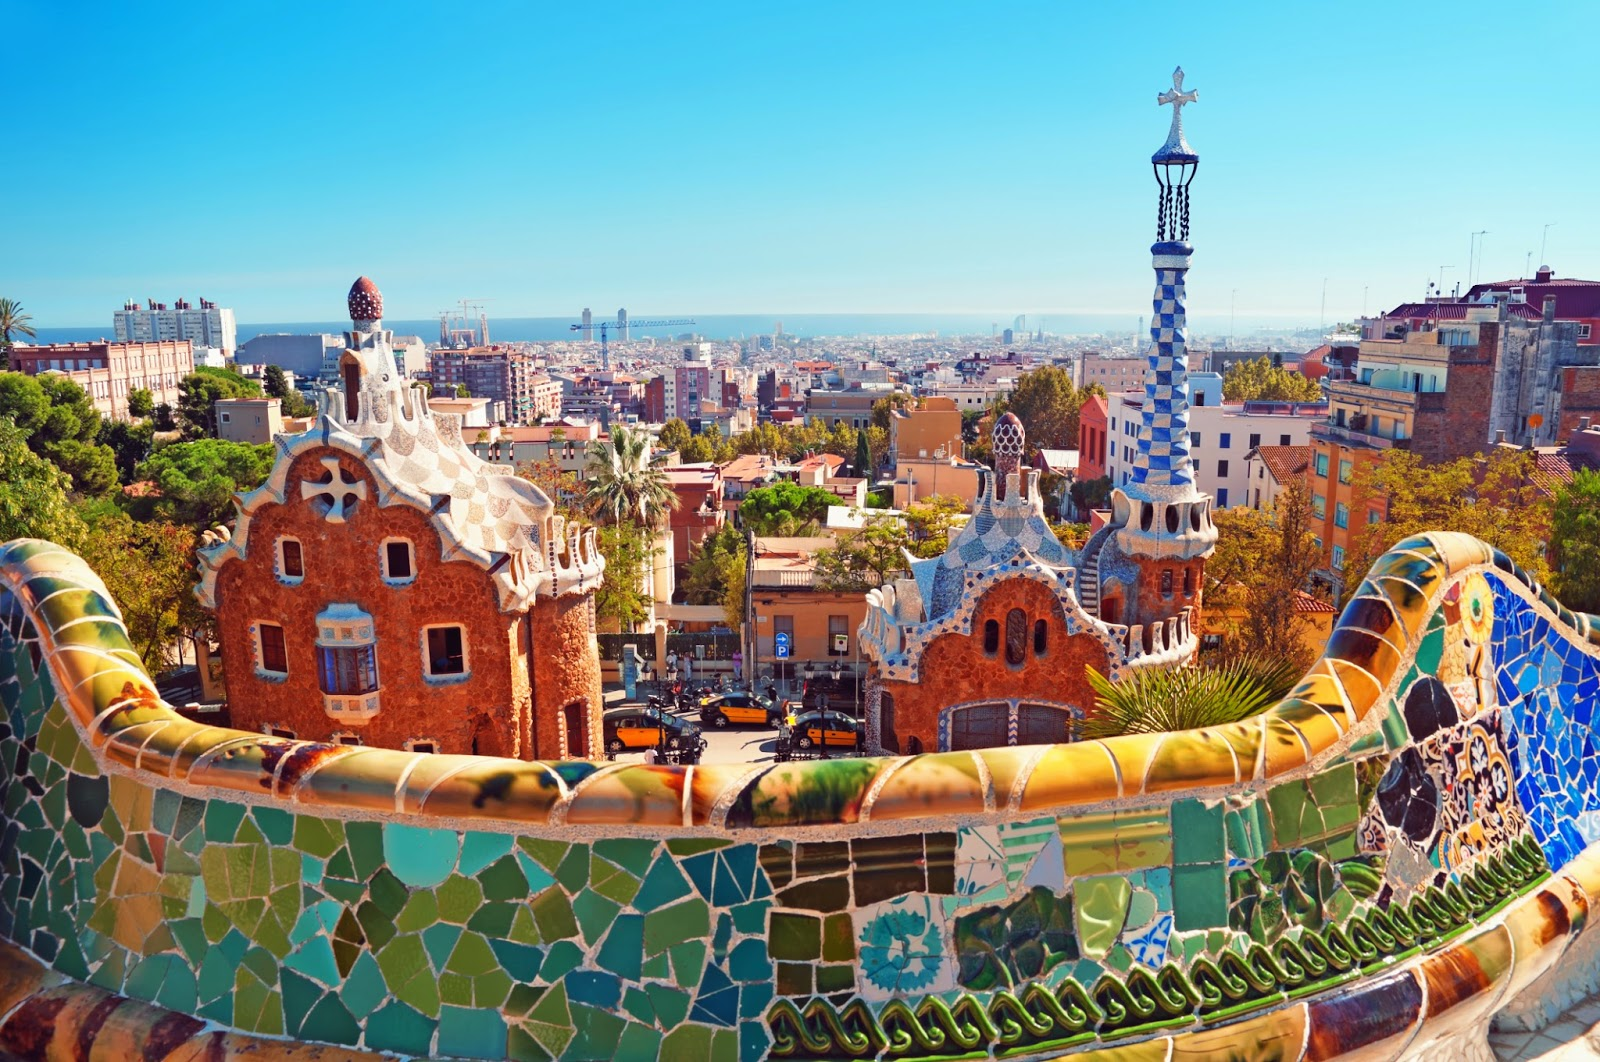 Image Parc Guell Barcelona